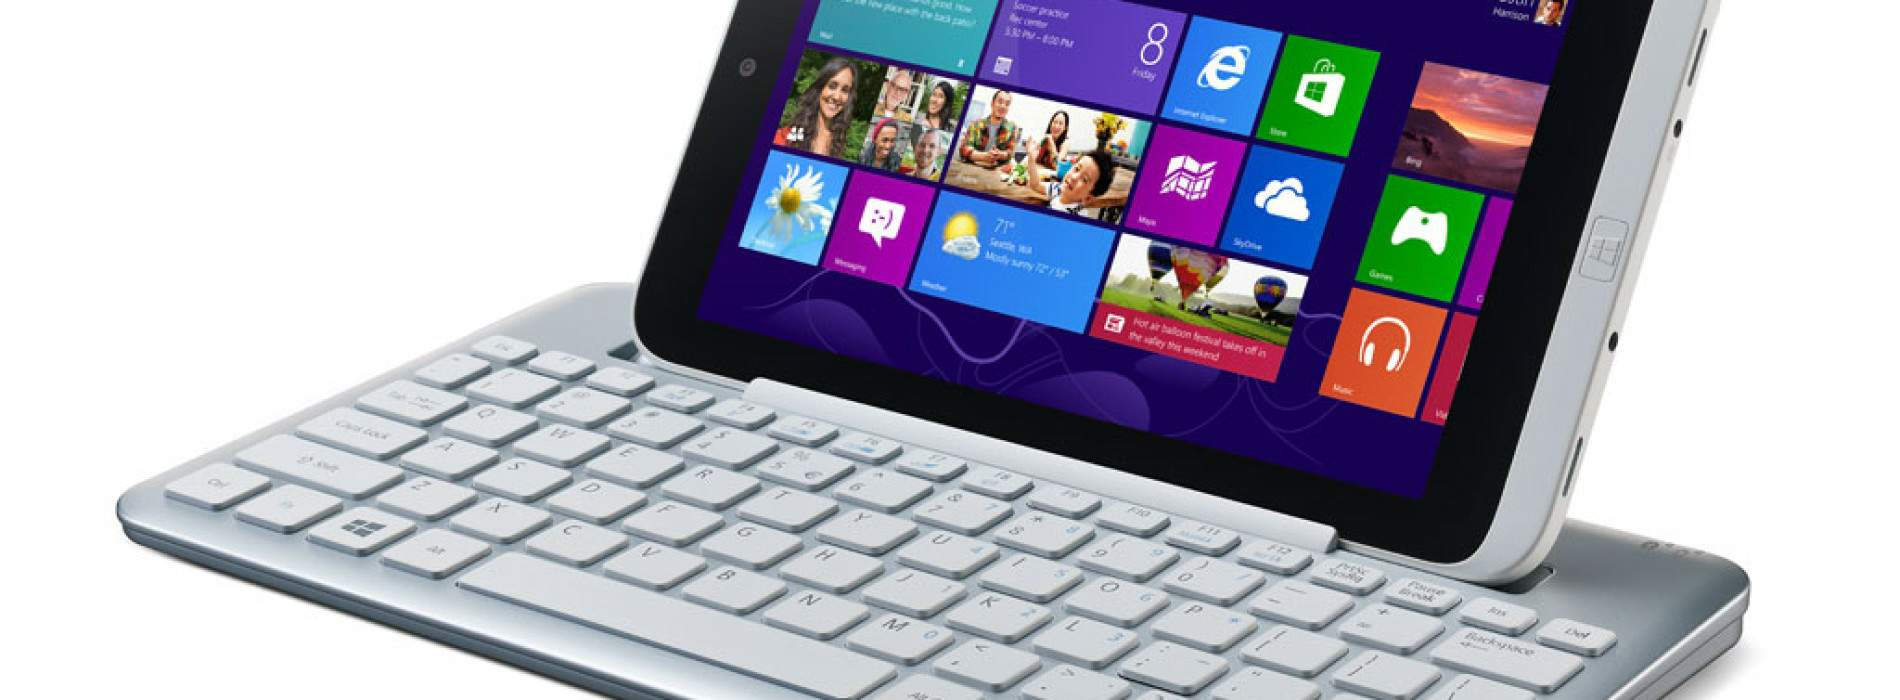 Iconia W3, el primer tablet de 8 pulgadas con Windows 8